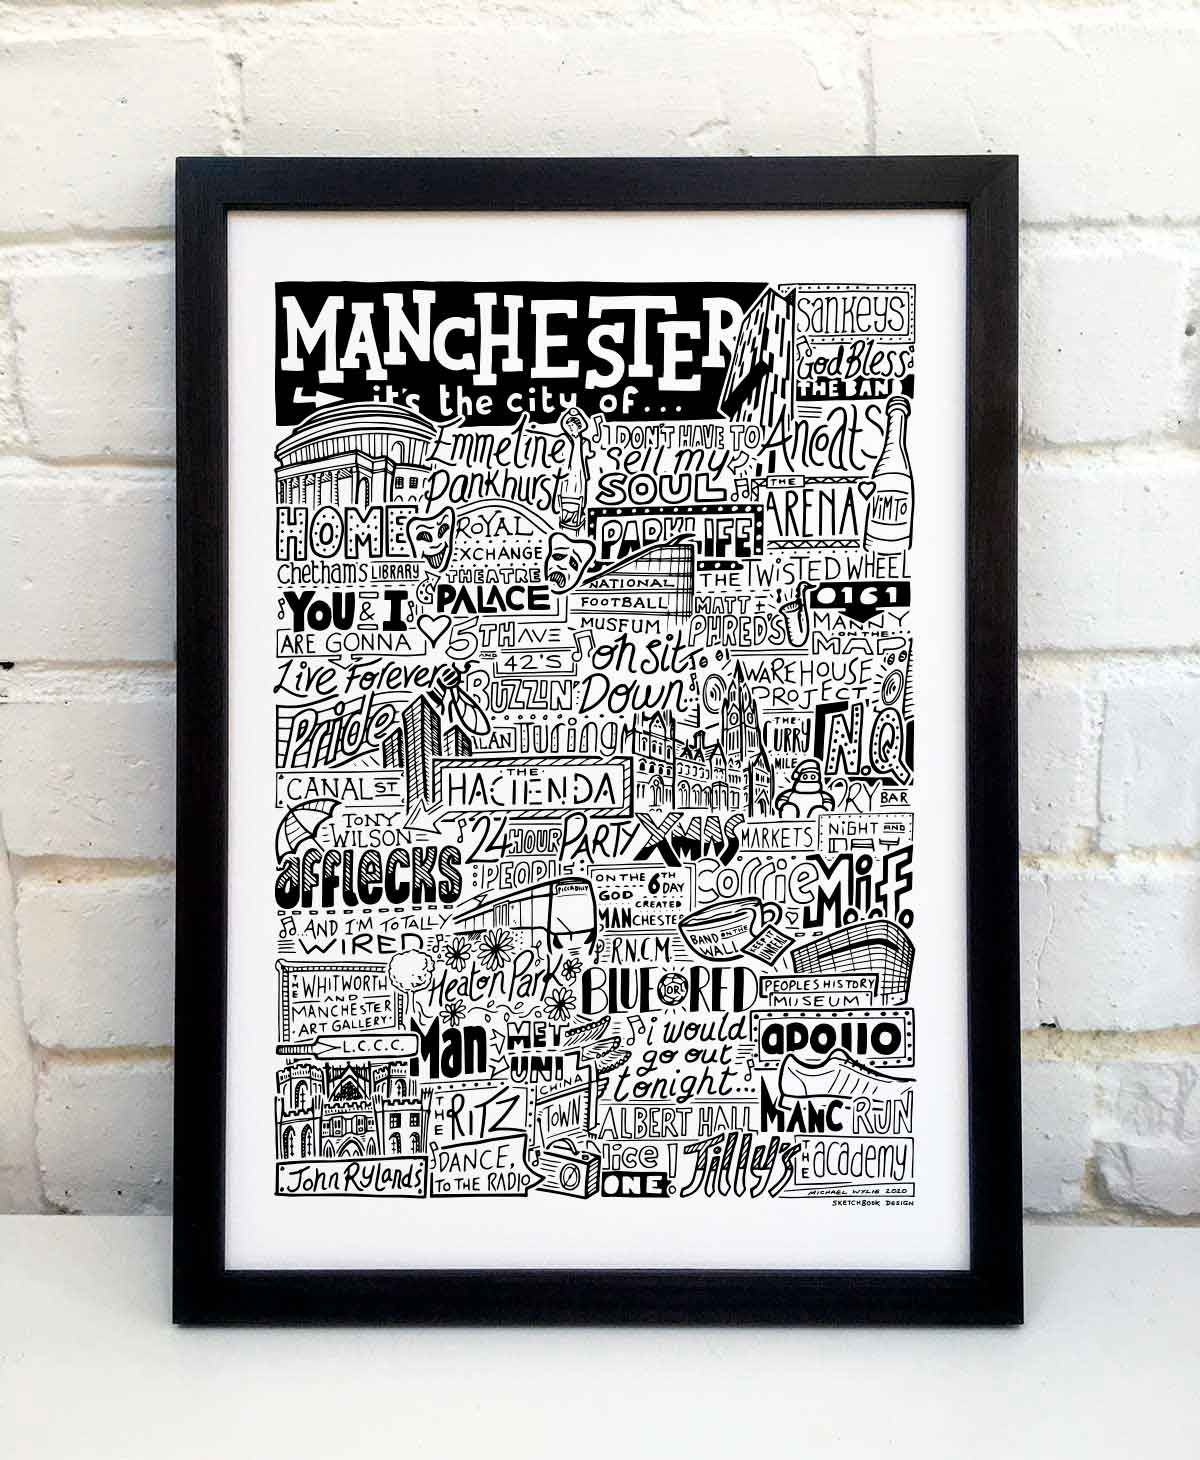 Manchester Landmarks Print by Sketchbook Design